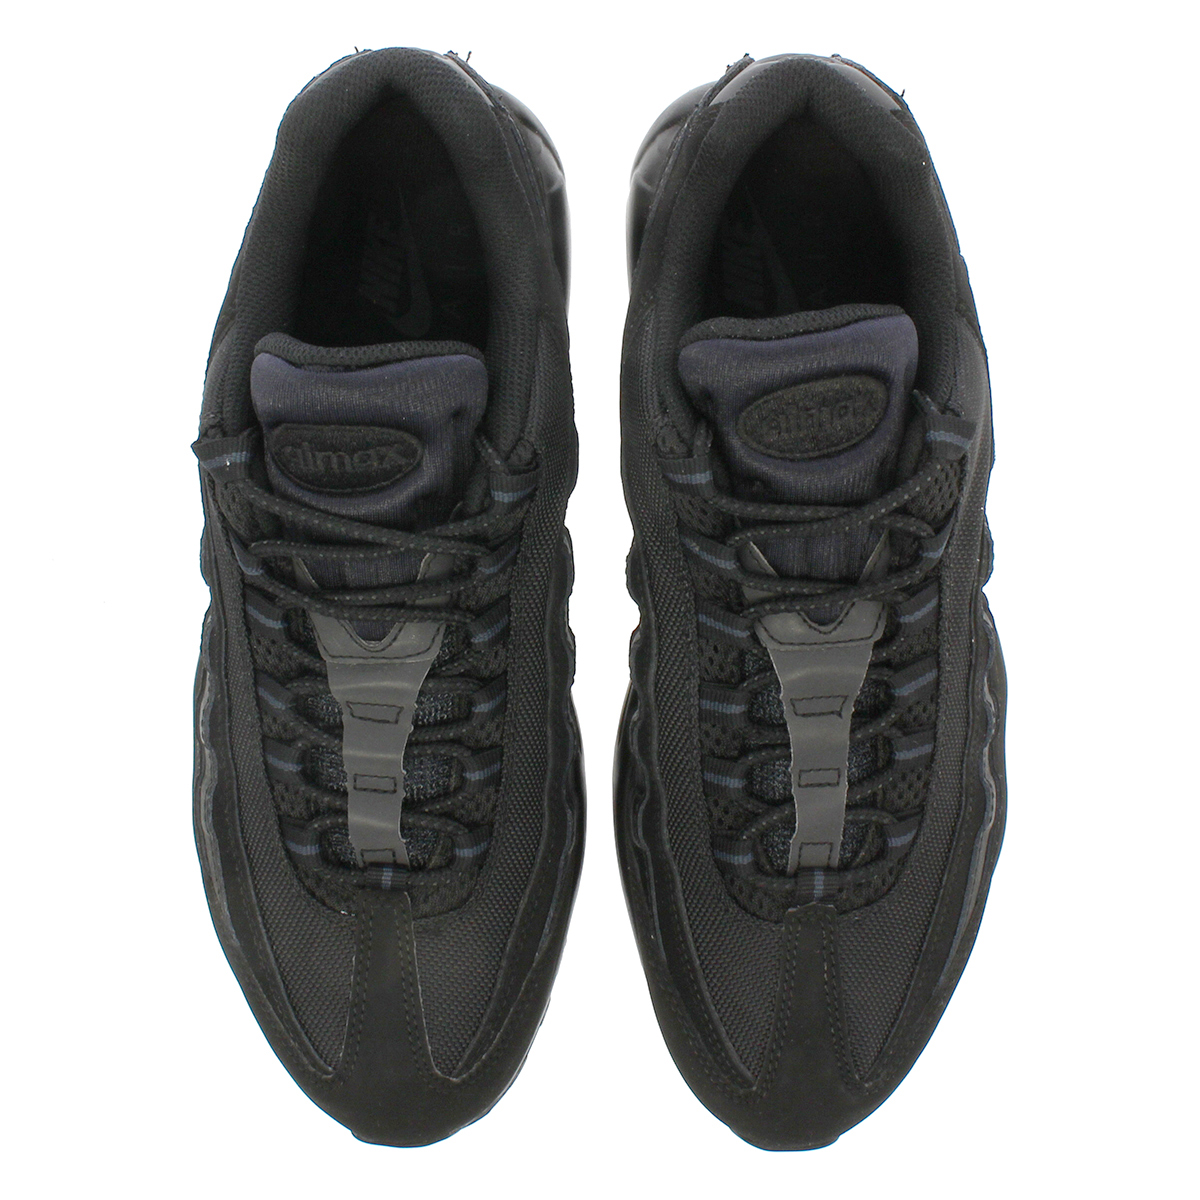 LOWTEX BIG-SMALL SHOP  NIKE AIR MAX 95 TRIPLE BLACK Kie Ney AMAX 95 ... 39296ba9a